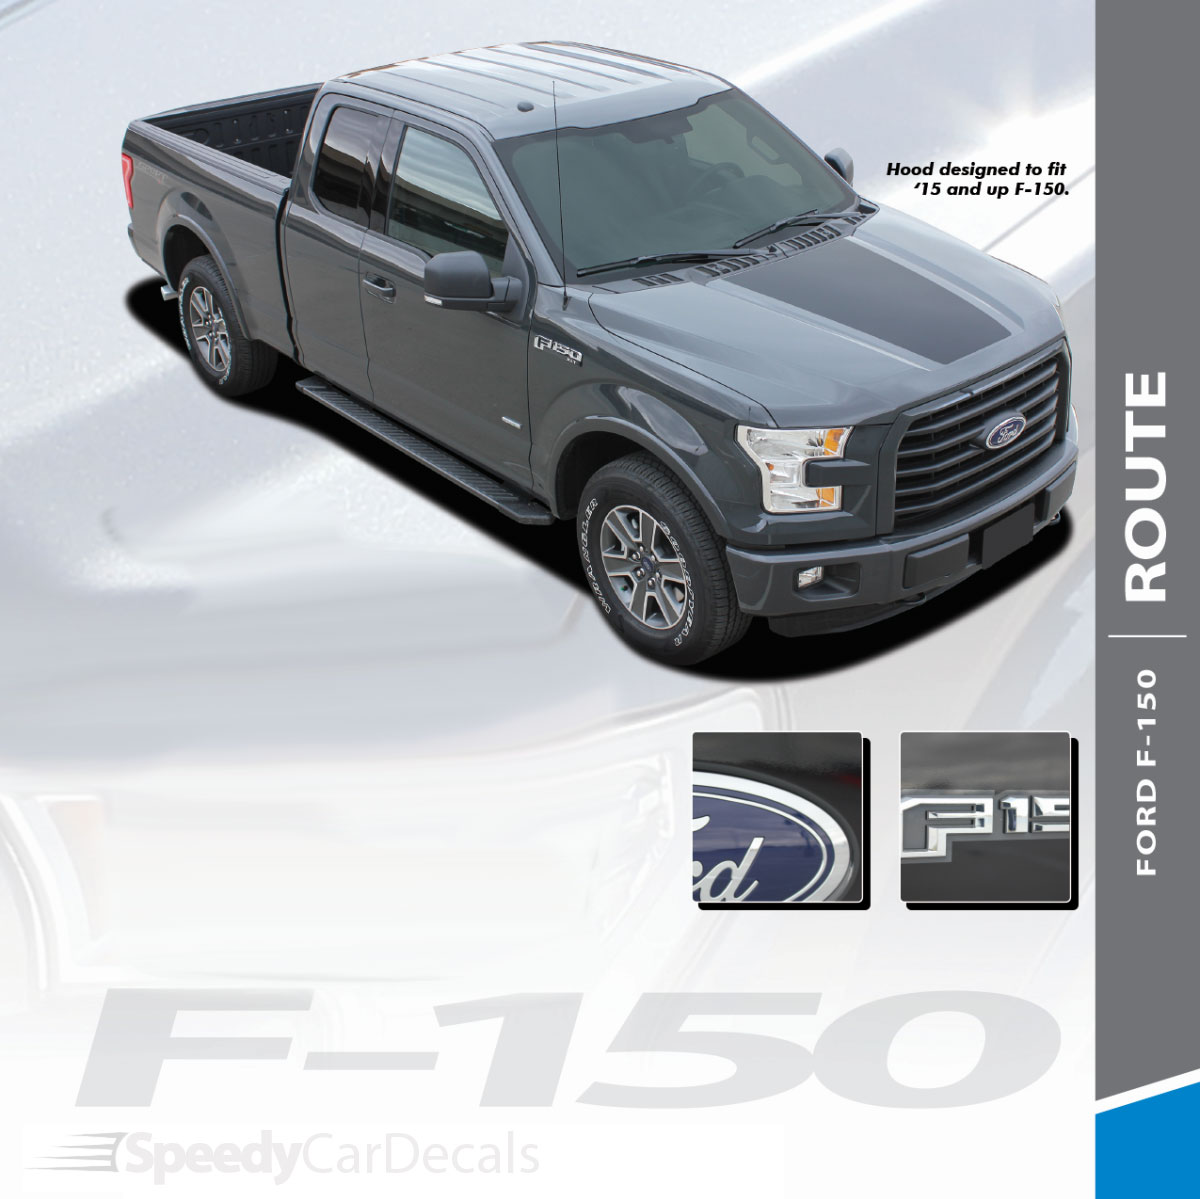 Tailgate Insert Graphics Stickers Decals For Ford Raptor 2015-2018 ORANGE BLK